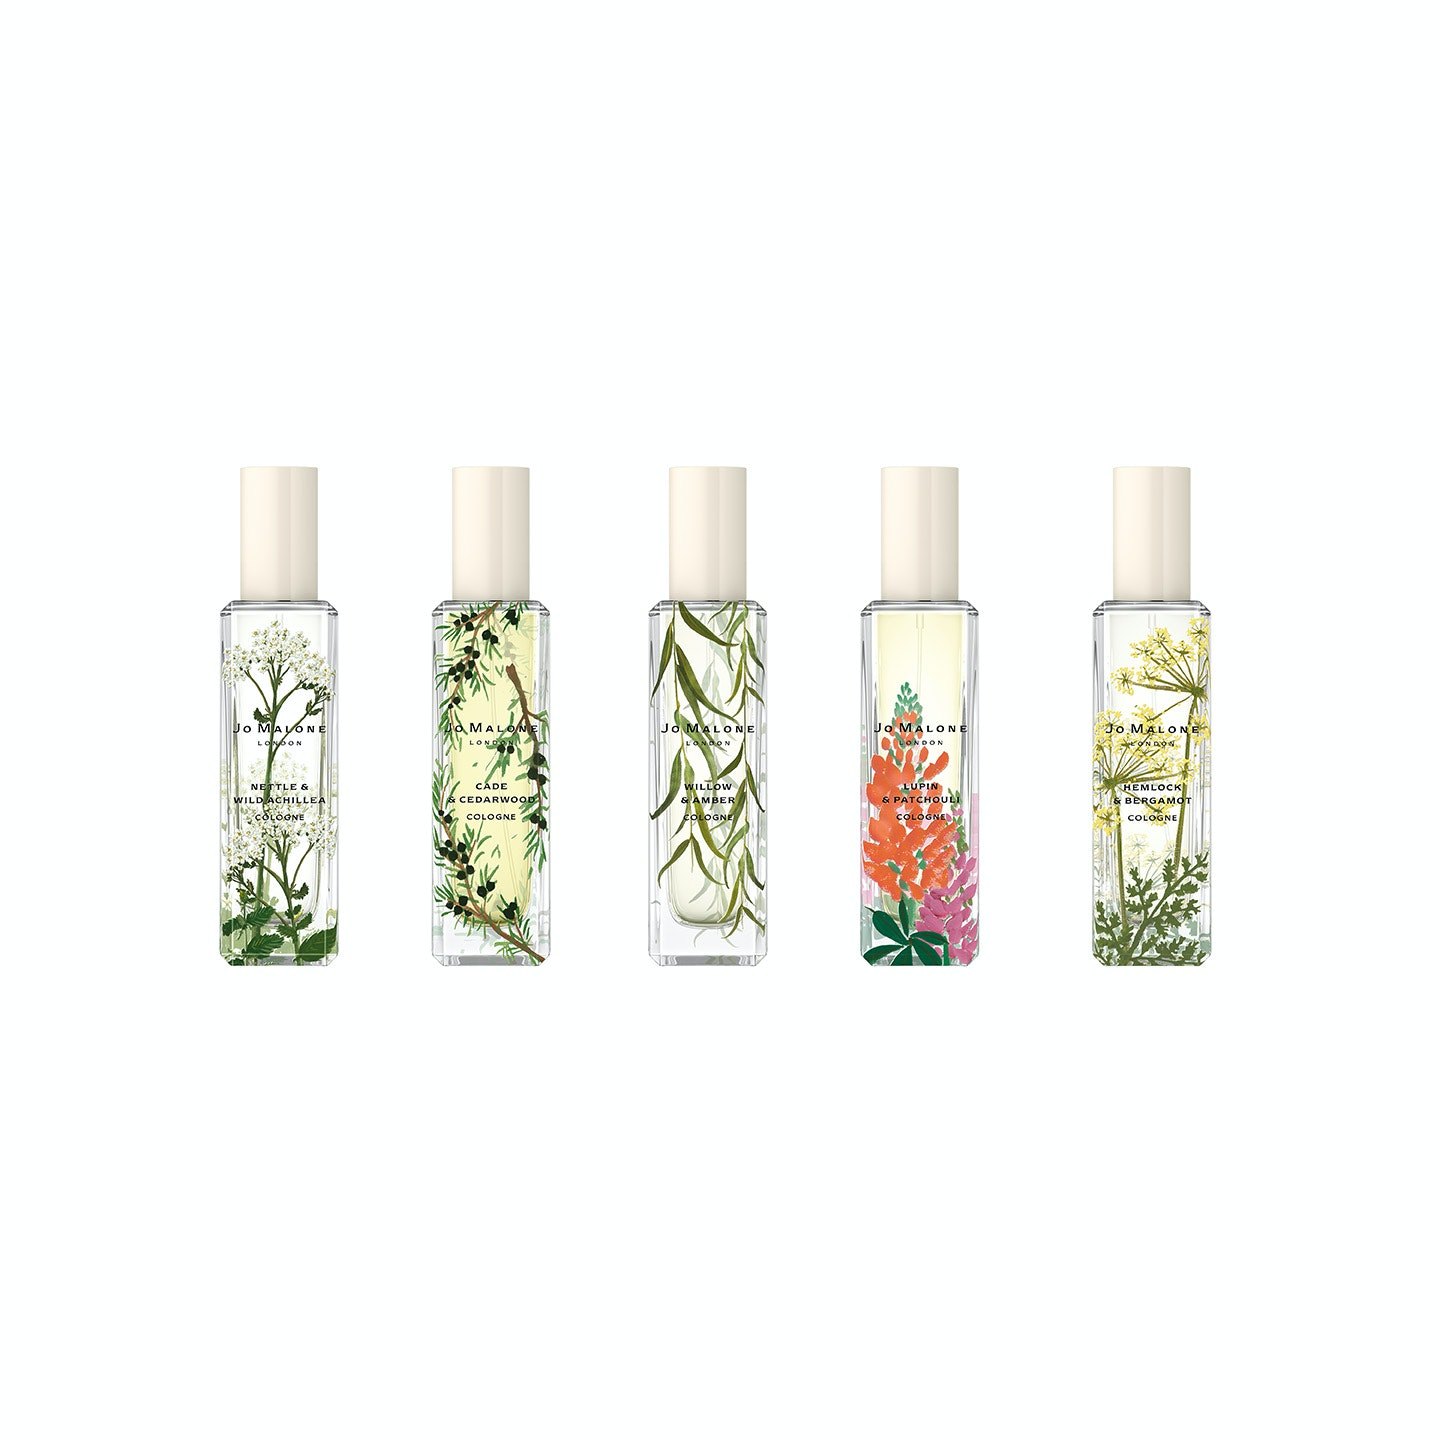 b9a457cc6ccc Jo Malone London's New Spring Collection Is Making Weeds Luxurious & I'm So  Here For It